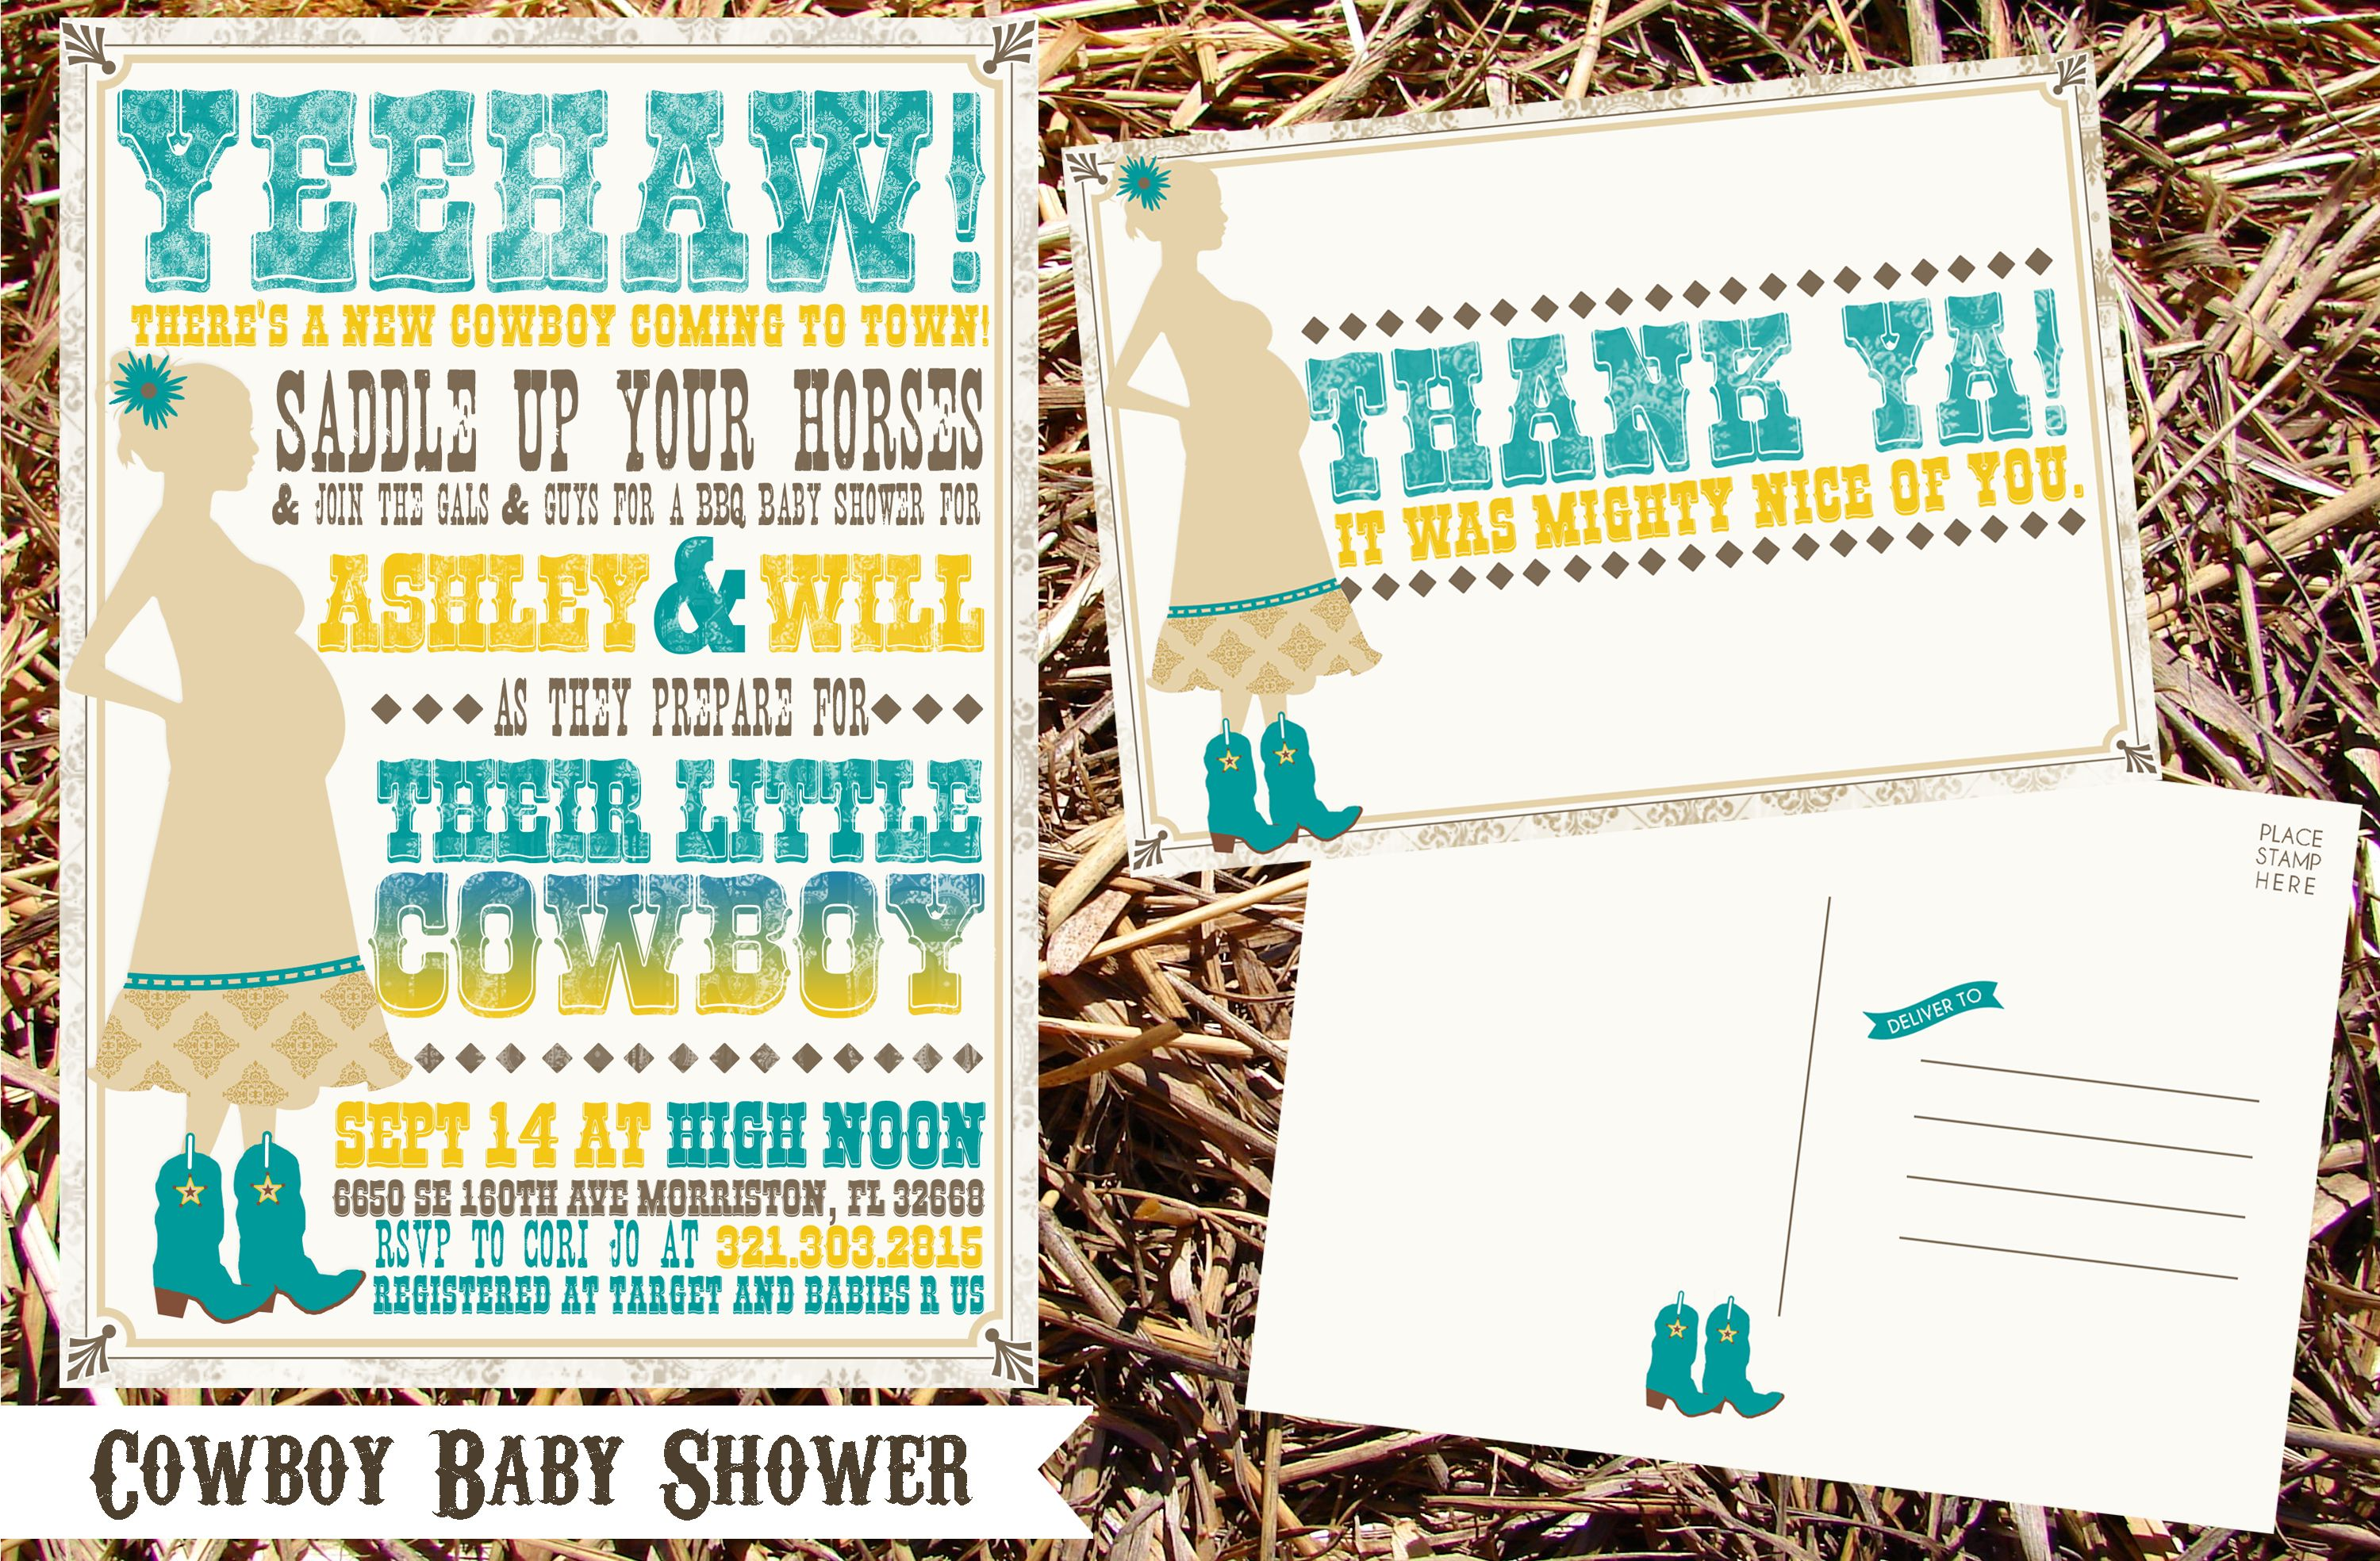 Cowboy Baby Shower Invitations & Thank You Notes Wwwkjpaperiecom